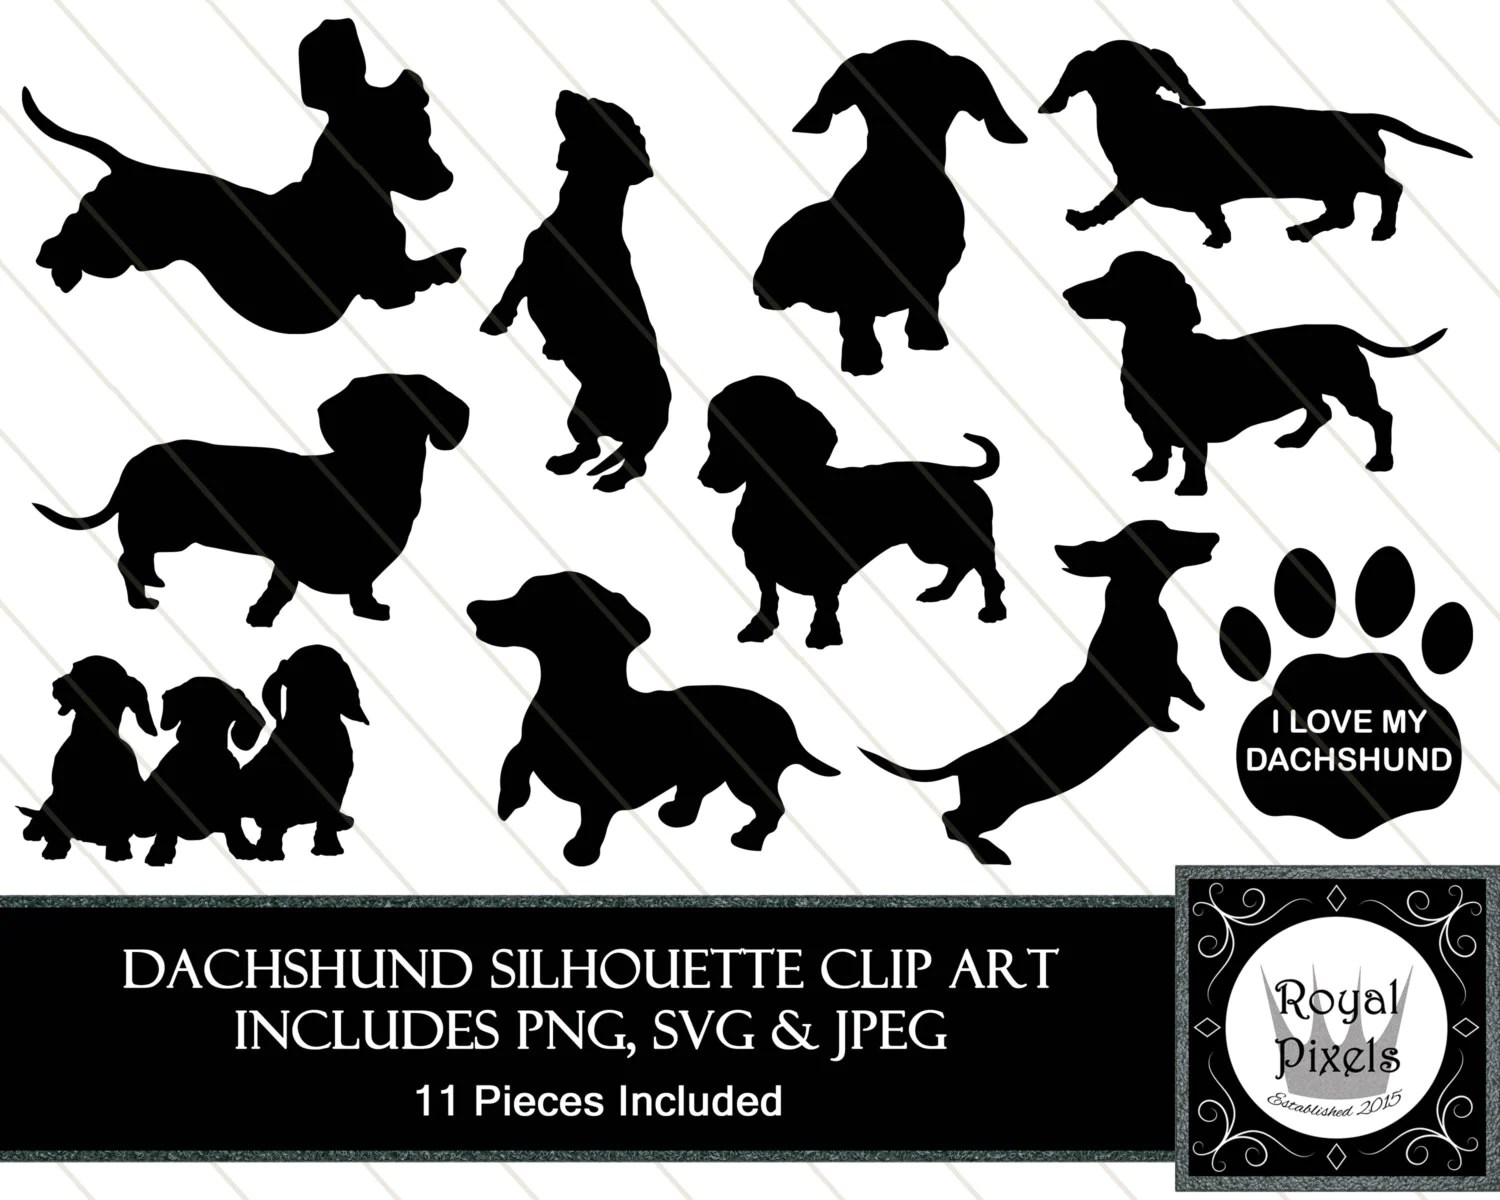 Dachshund Silhouette Clip Art Set 11 Piece Pet Dog